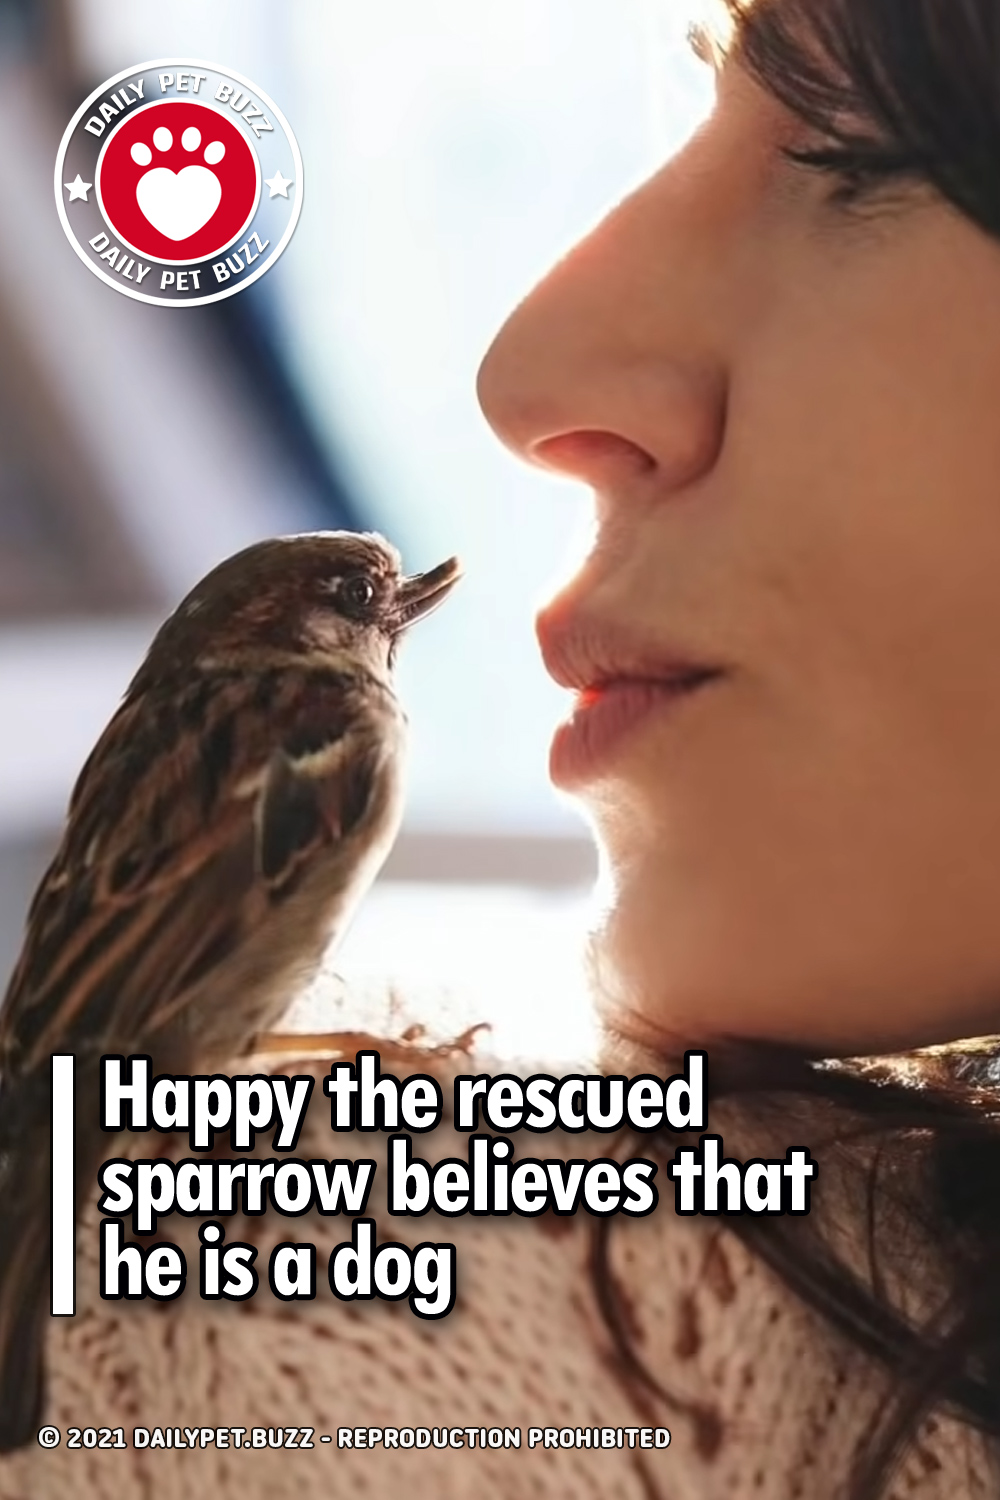 Happy the rescued sparrow believes that he is a dog